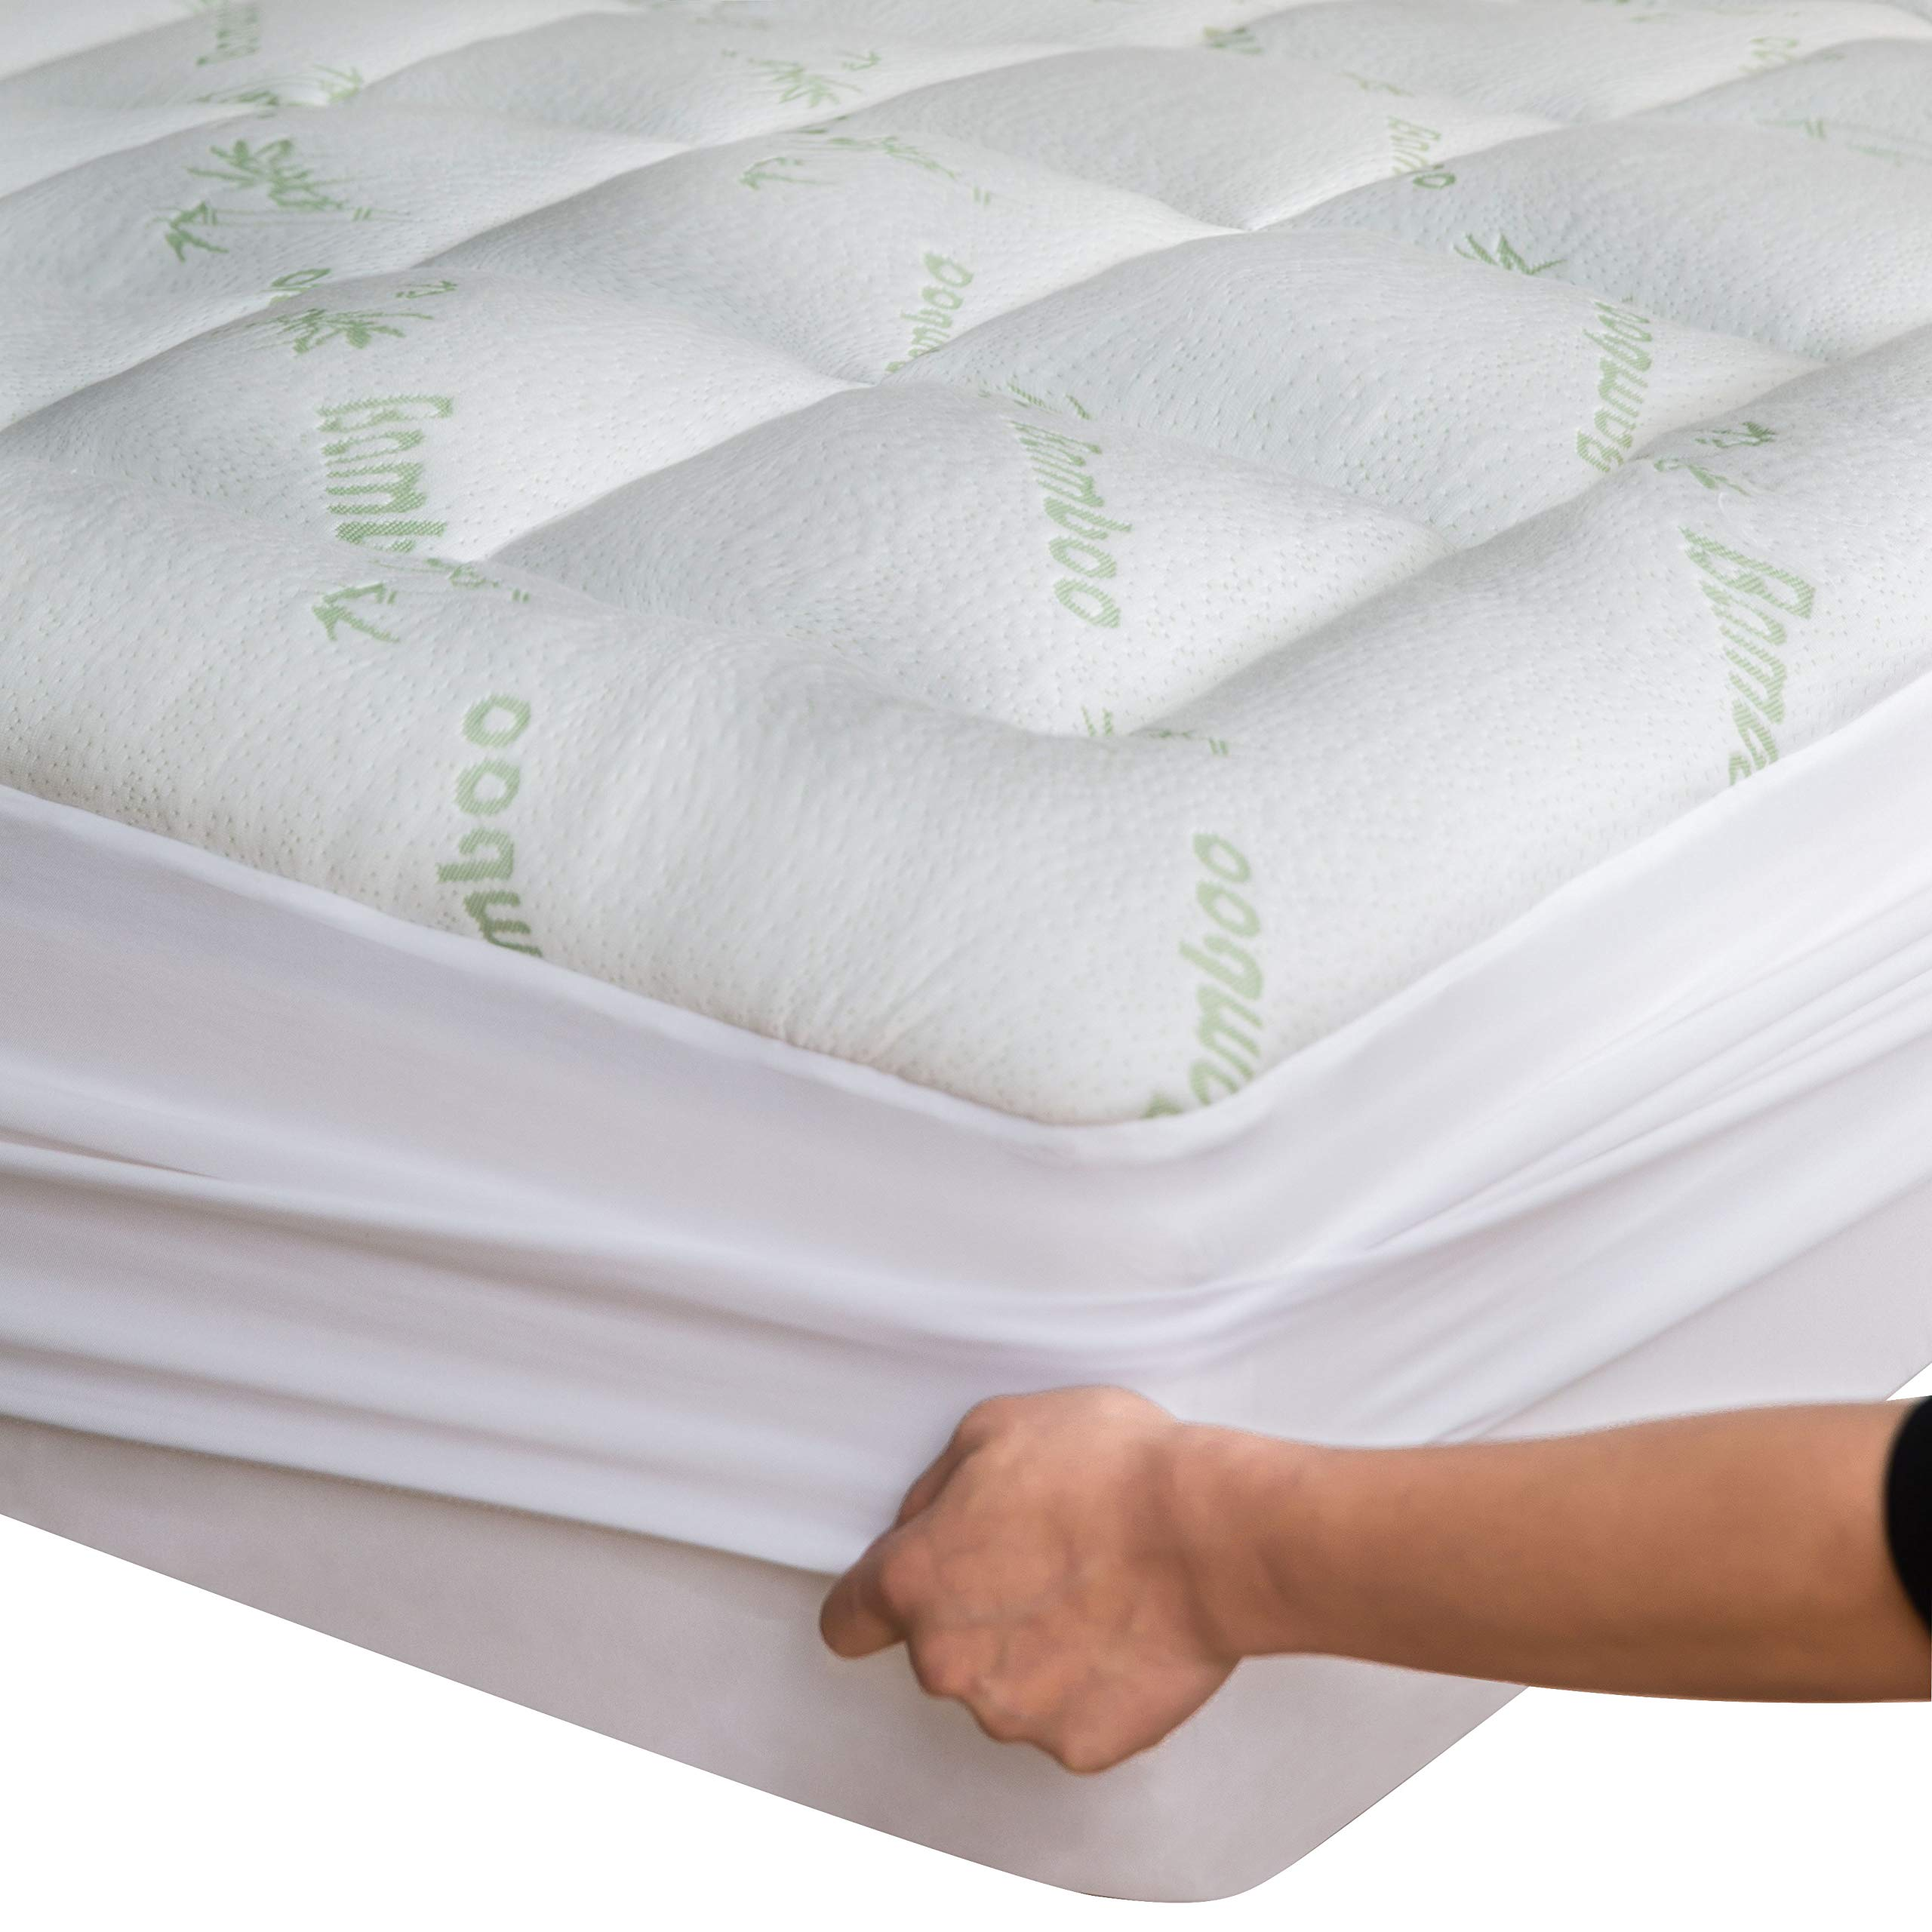 Bamboo Mattress Topper Queen with Bonus Pillow Protector Cooling Pillow Top Mattress Pad Breathable Extra Plush Thick Fitted 8-21Inches Rayon Cooling Fabric Ultra Soft by Niagara Sleep Solution